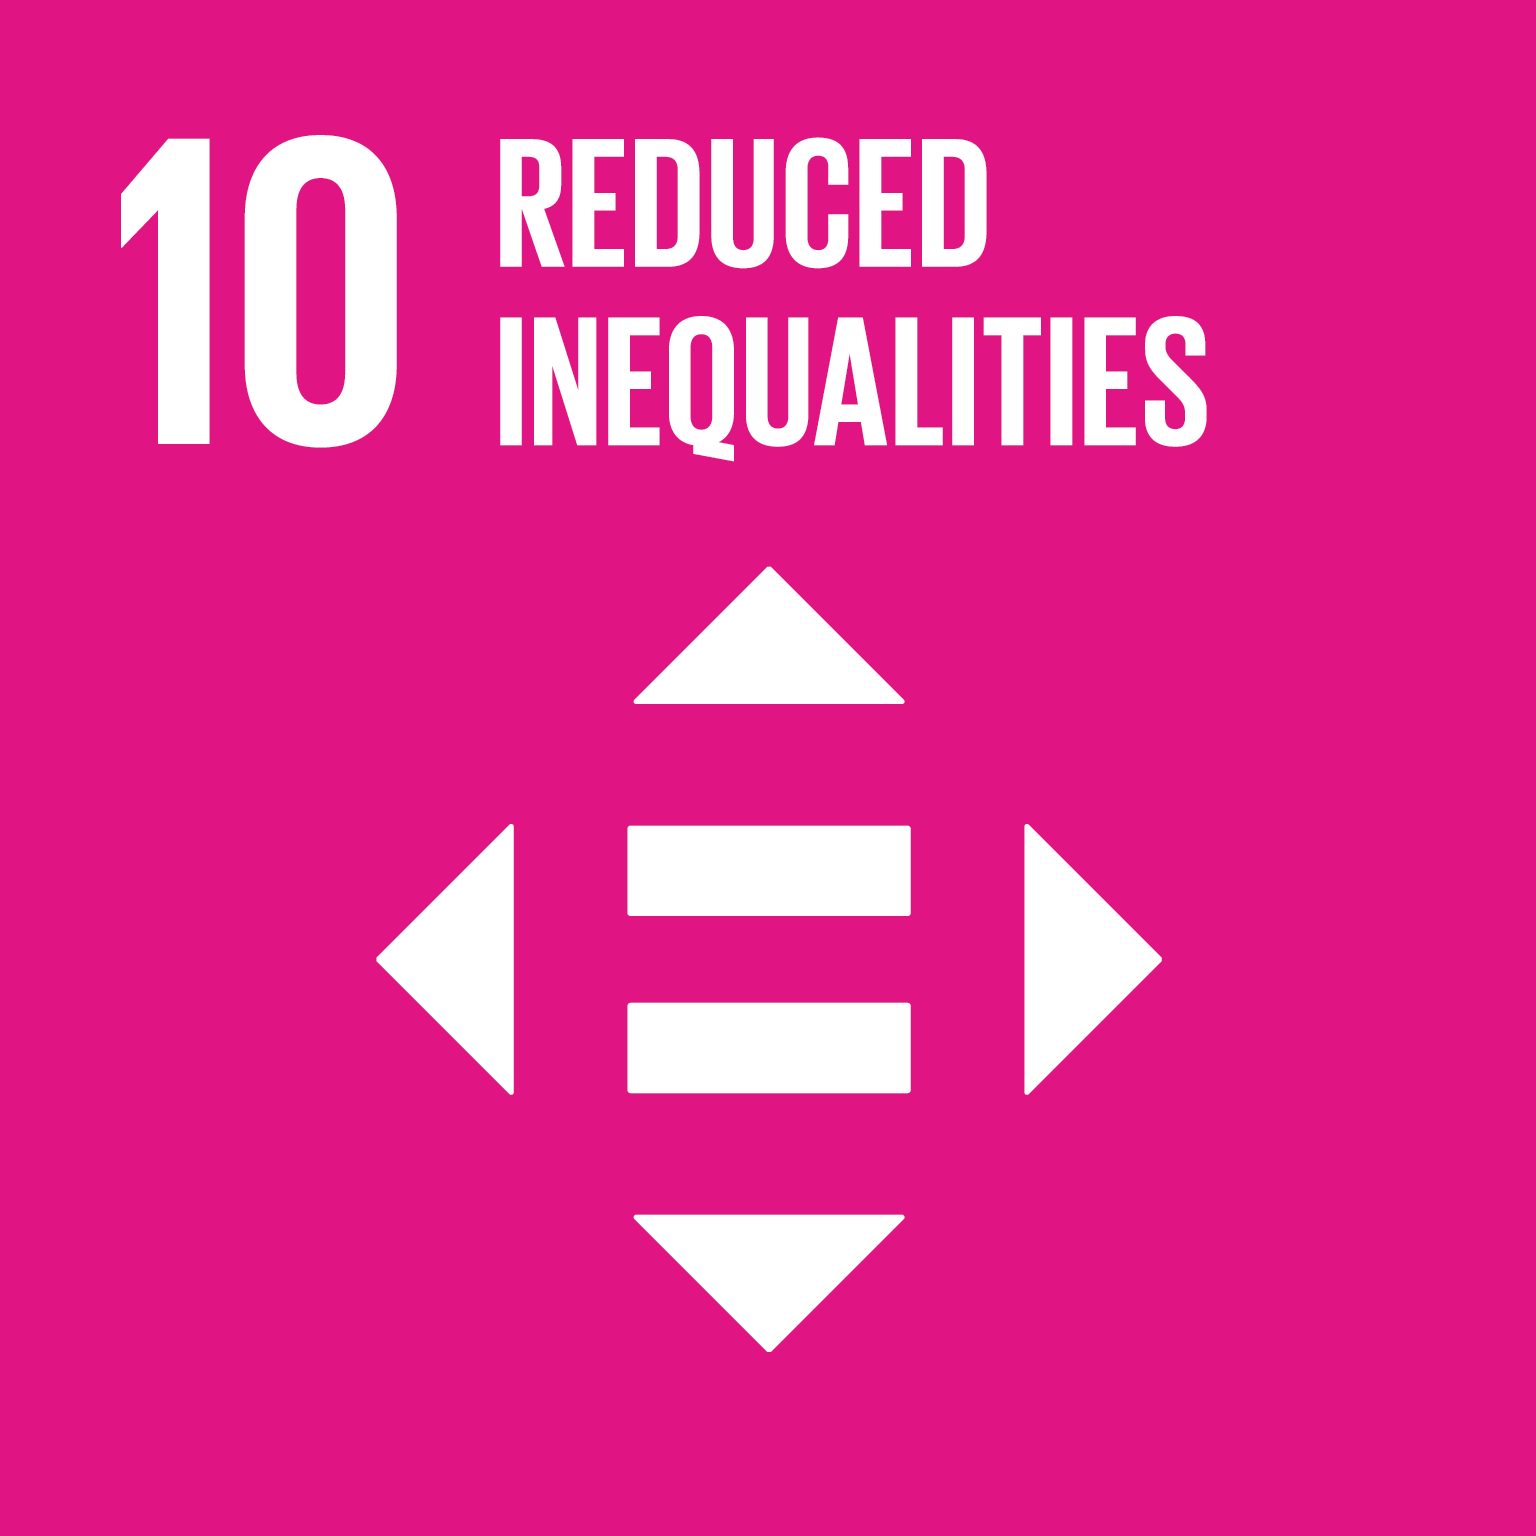 SDG Goal 10 'Reduced inequalities' © UN